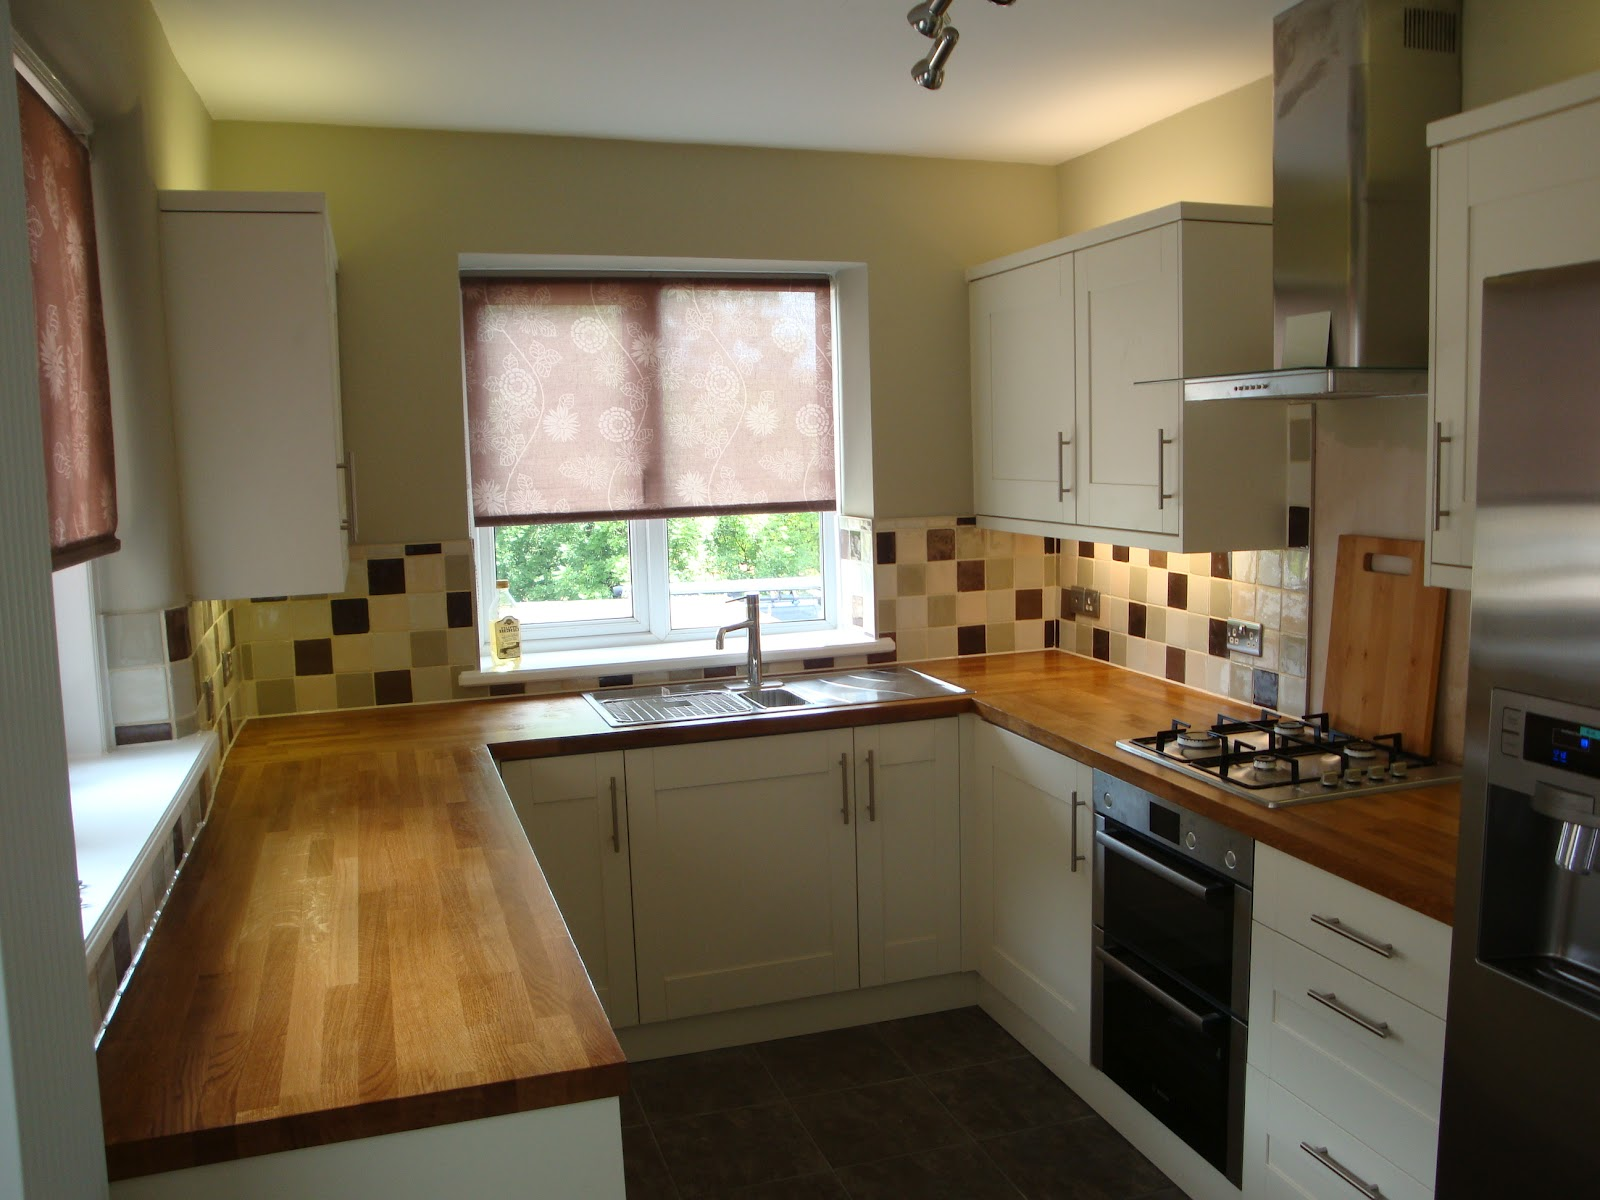 Glenlith interiors blog october 2012 for Kitchen ideas glasgow